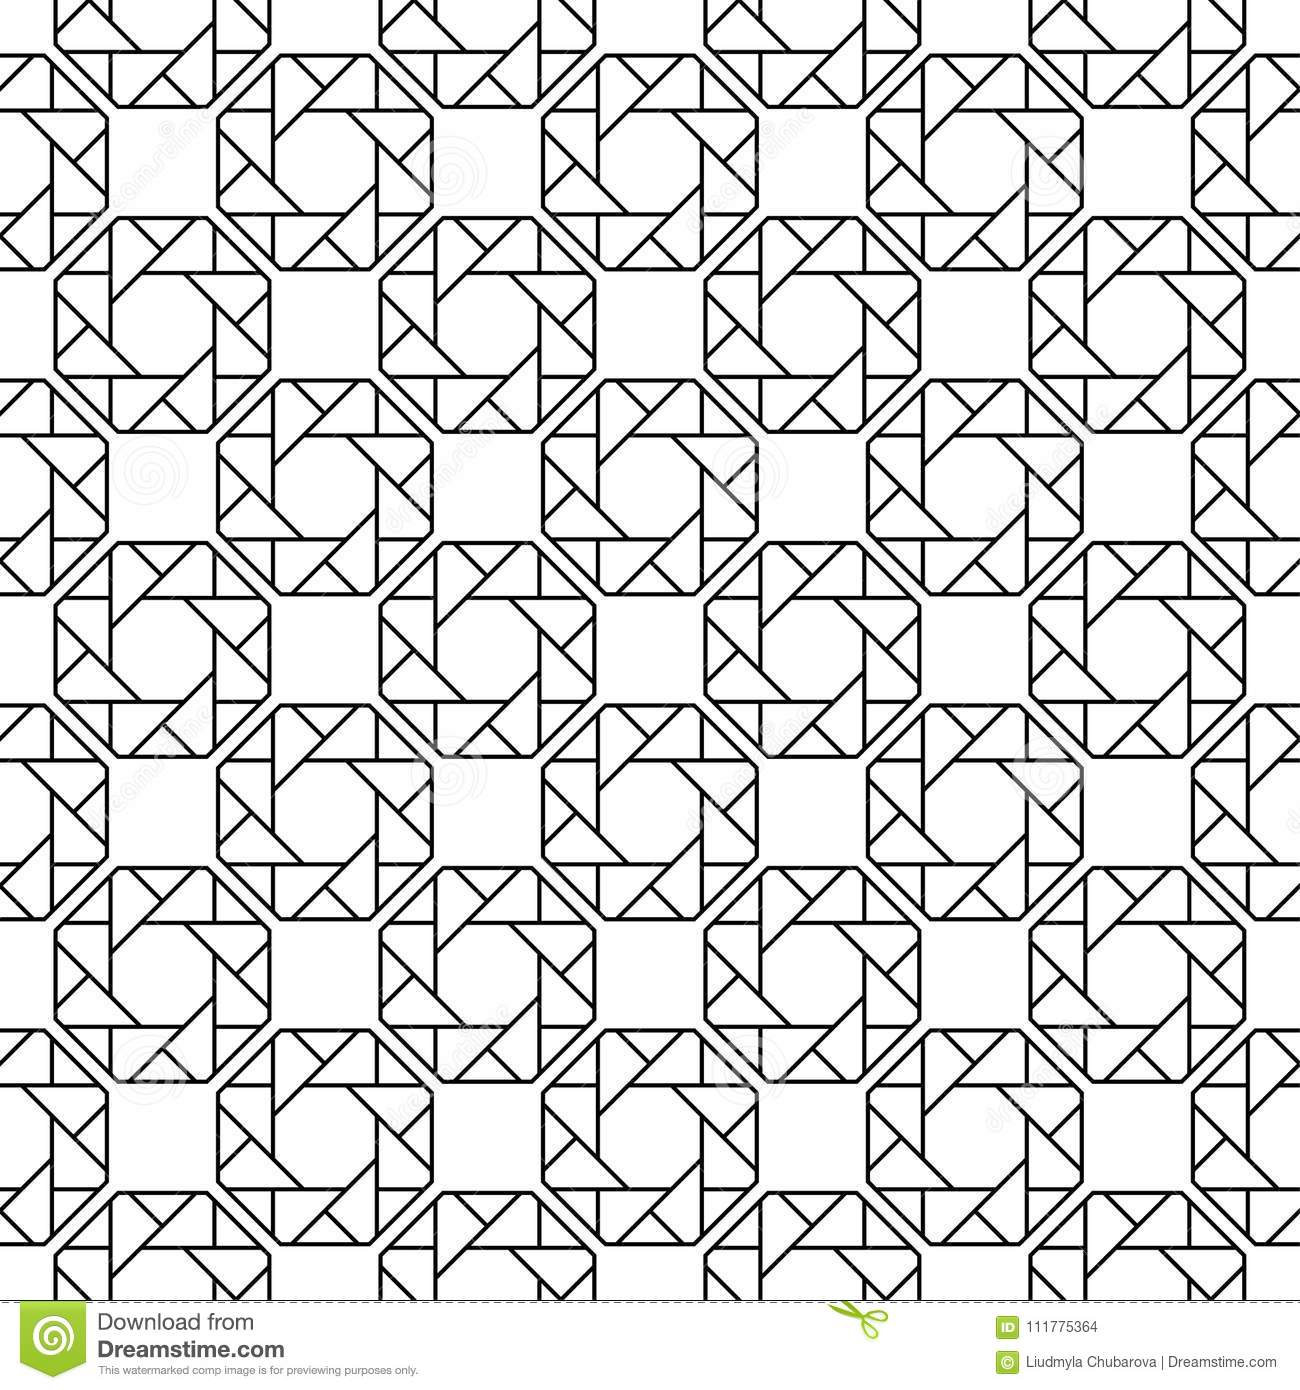 Black geometric ornament on white background. Seamless pattern